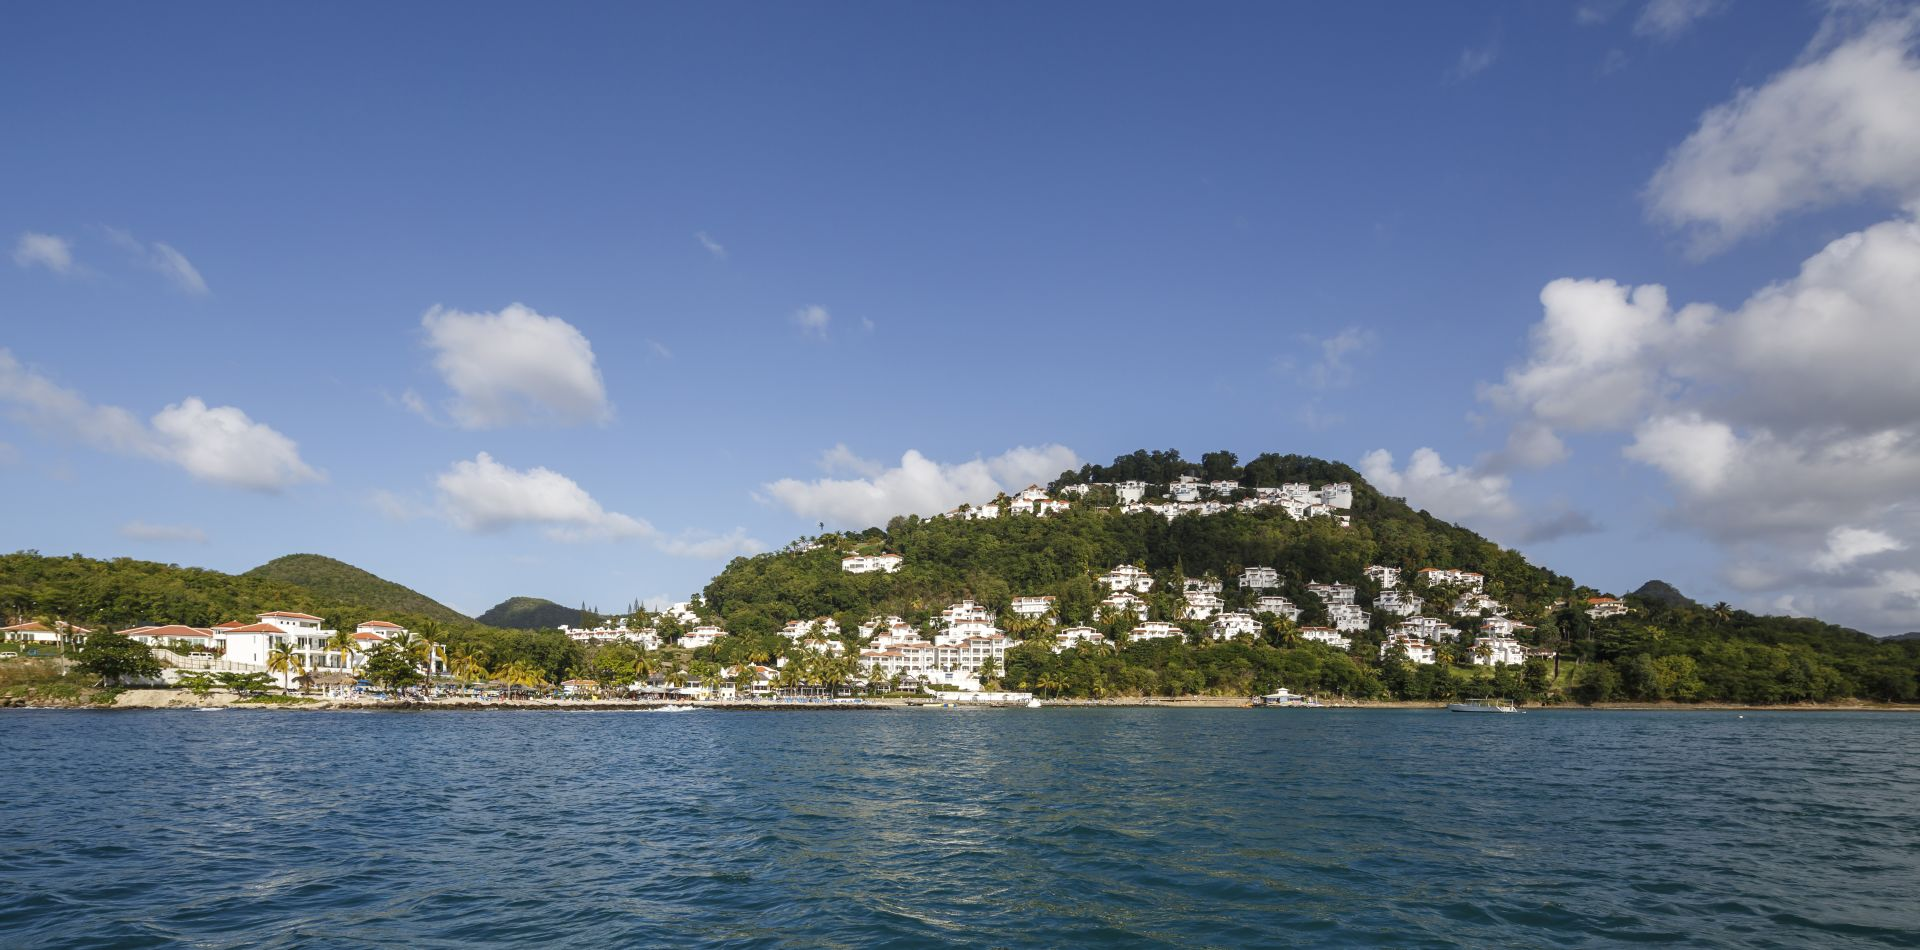 view of St. Lucia from the water